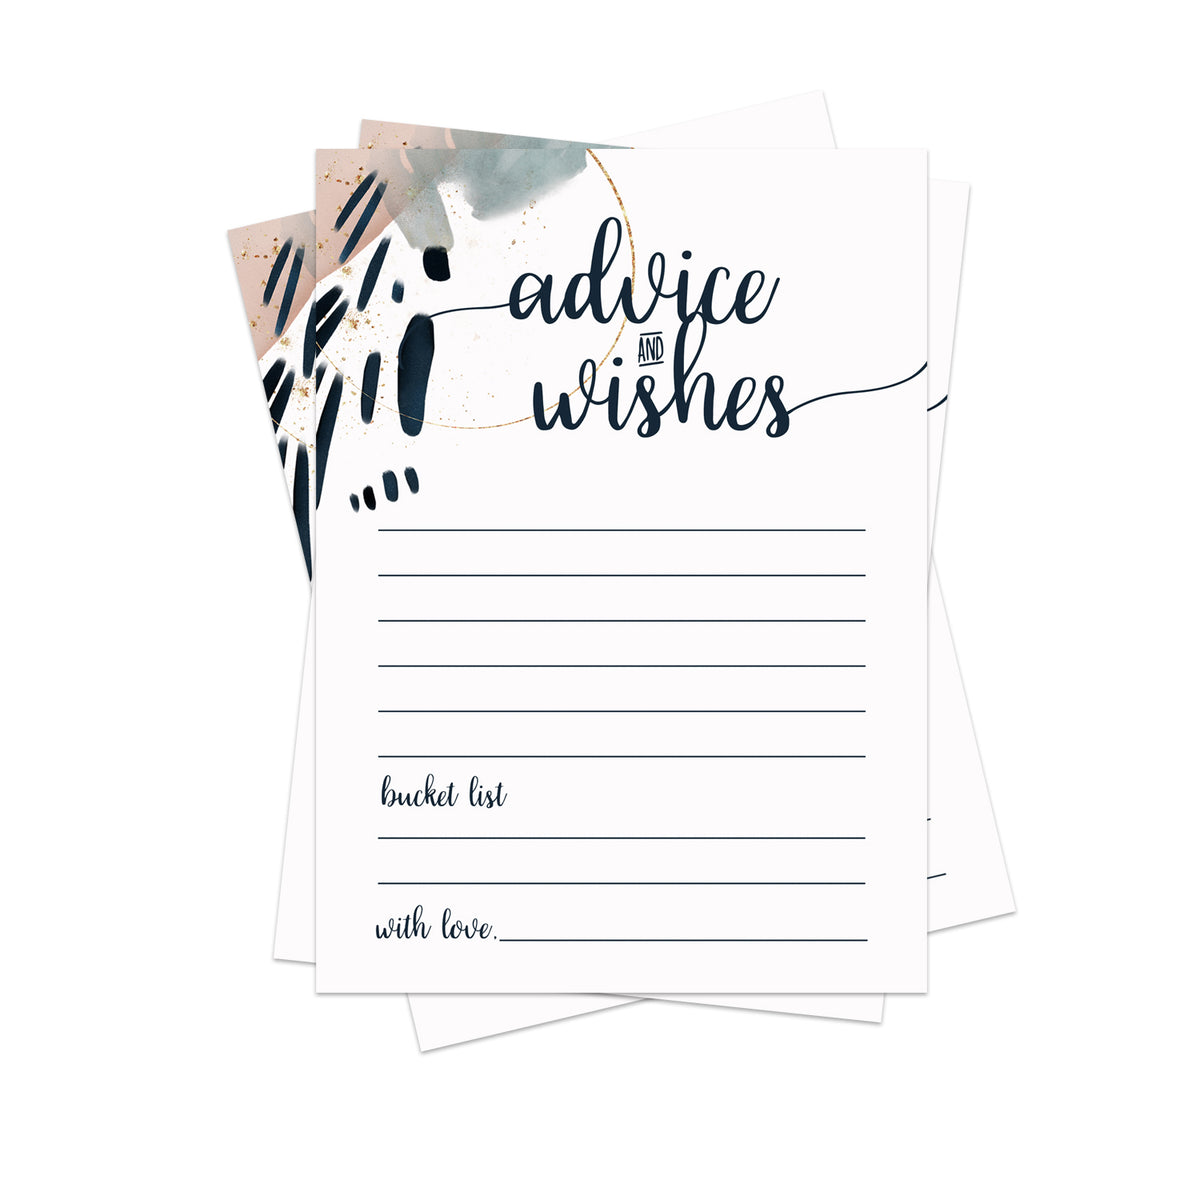 Advice and Wishes